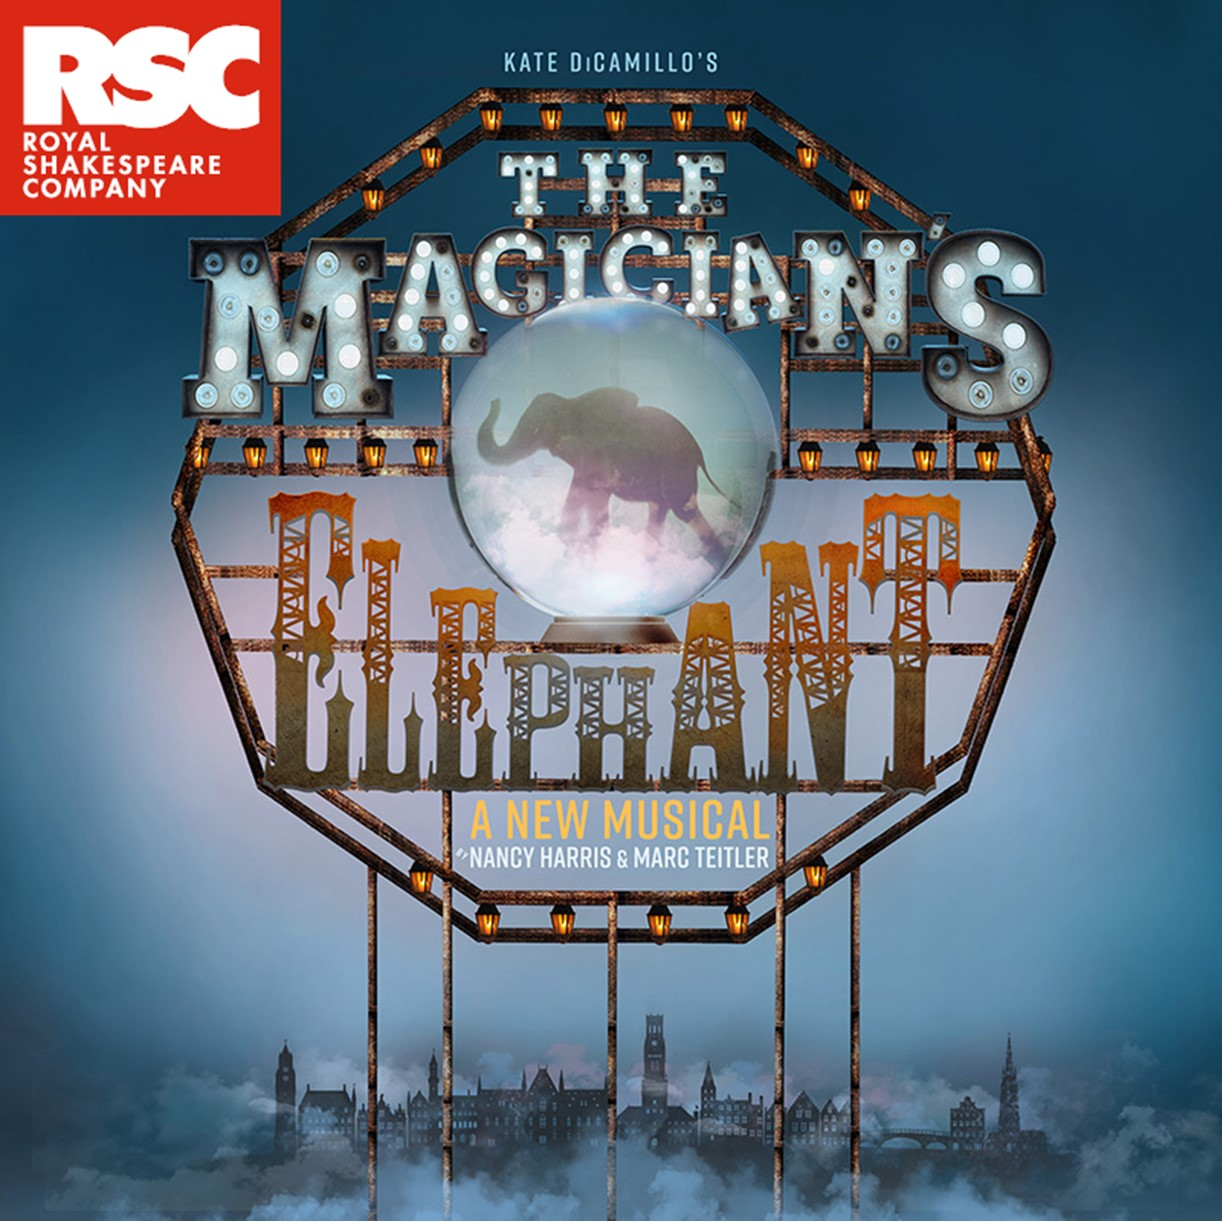 Above a misty cityscape a steampunk-style sign reads The Magician's Elephant. A few of the lights illuminating the lettering have burned out and the metal words look rusty. In the middle is a crystal ball revealing the shadow of an elephant.